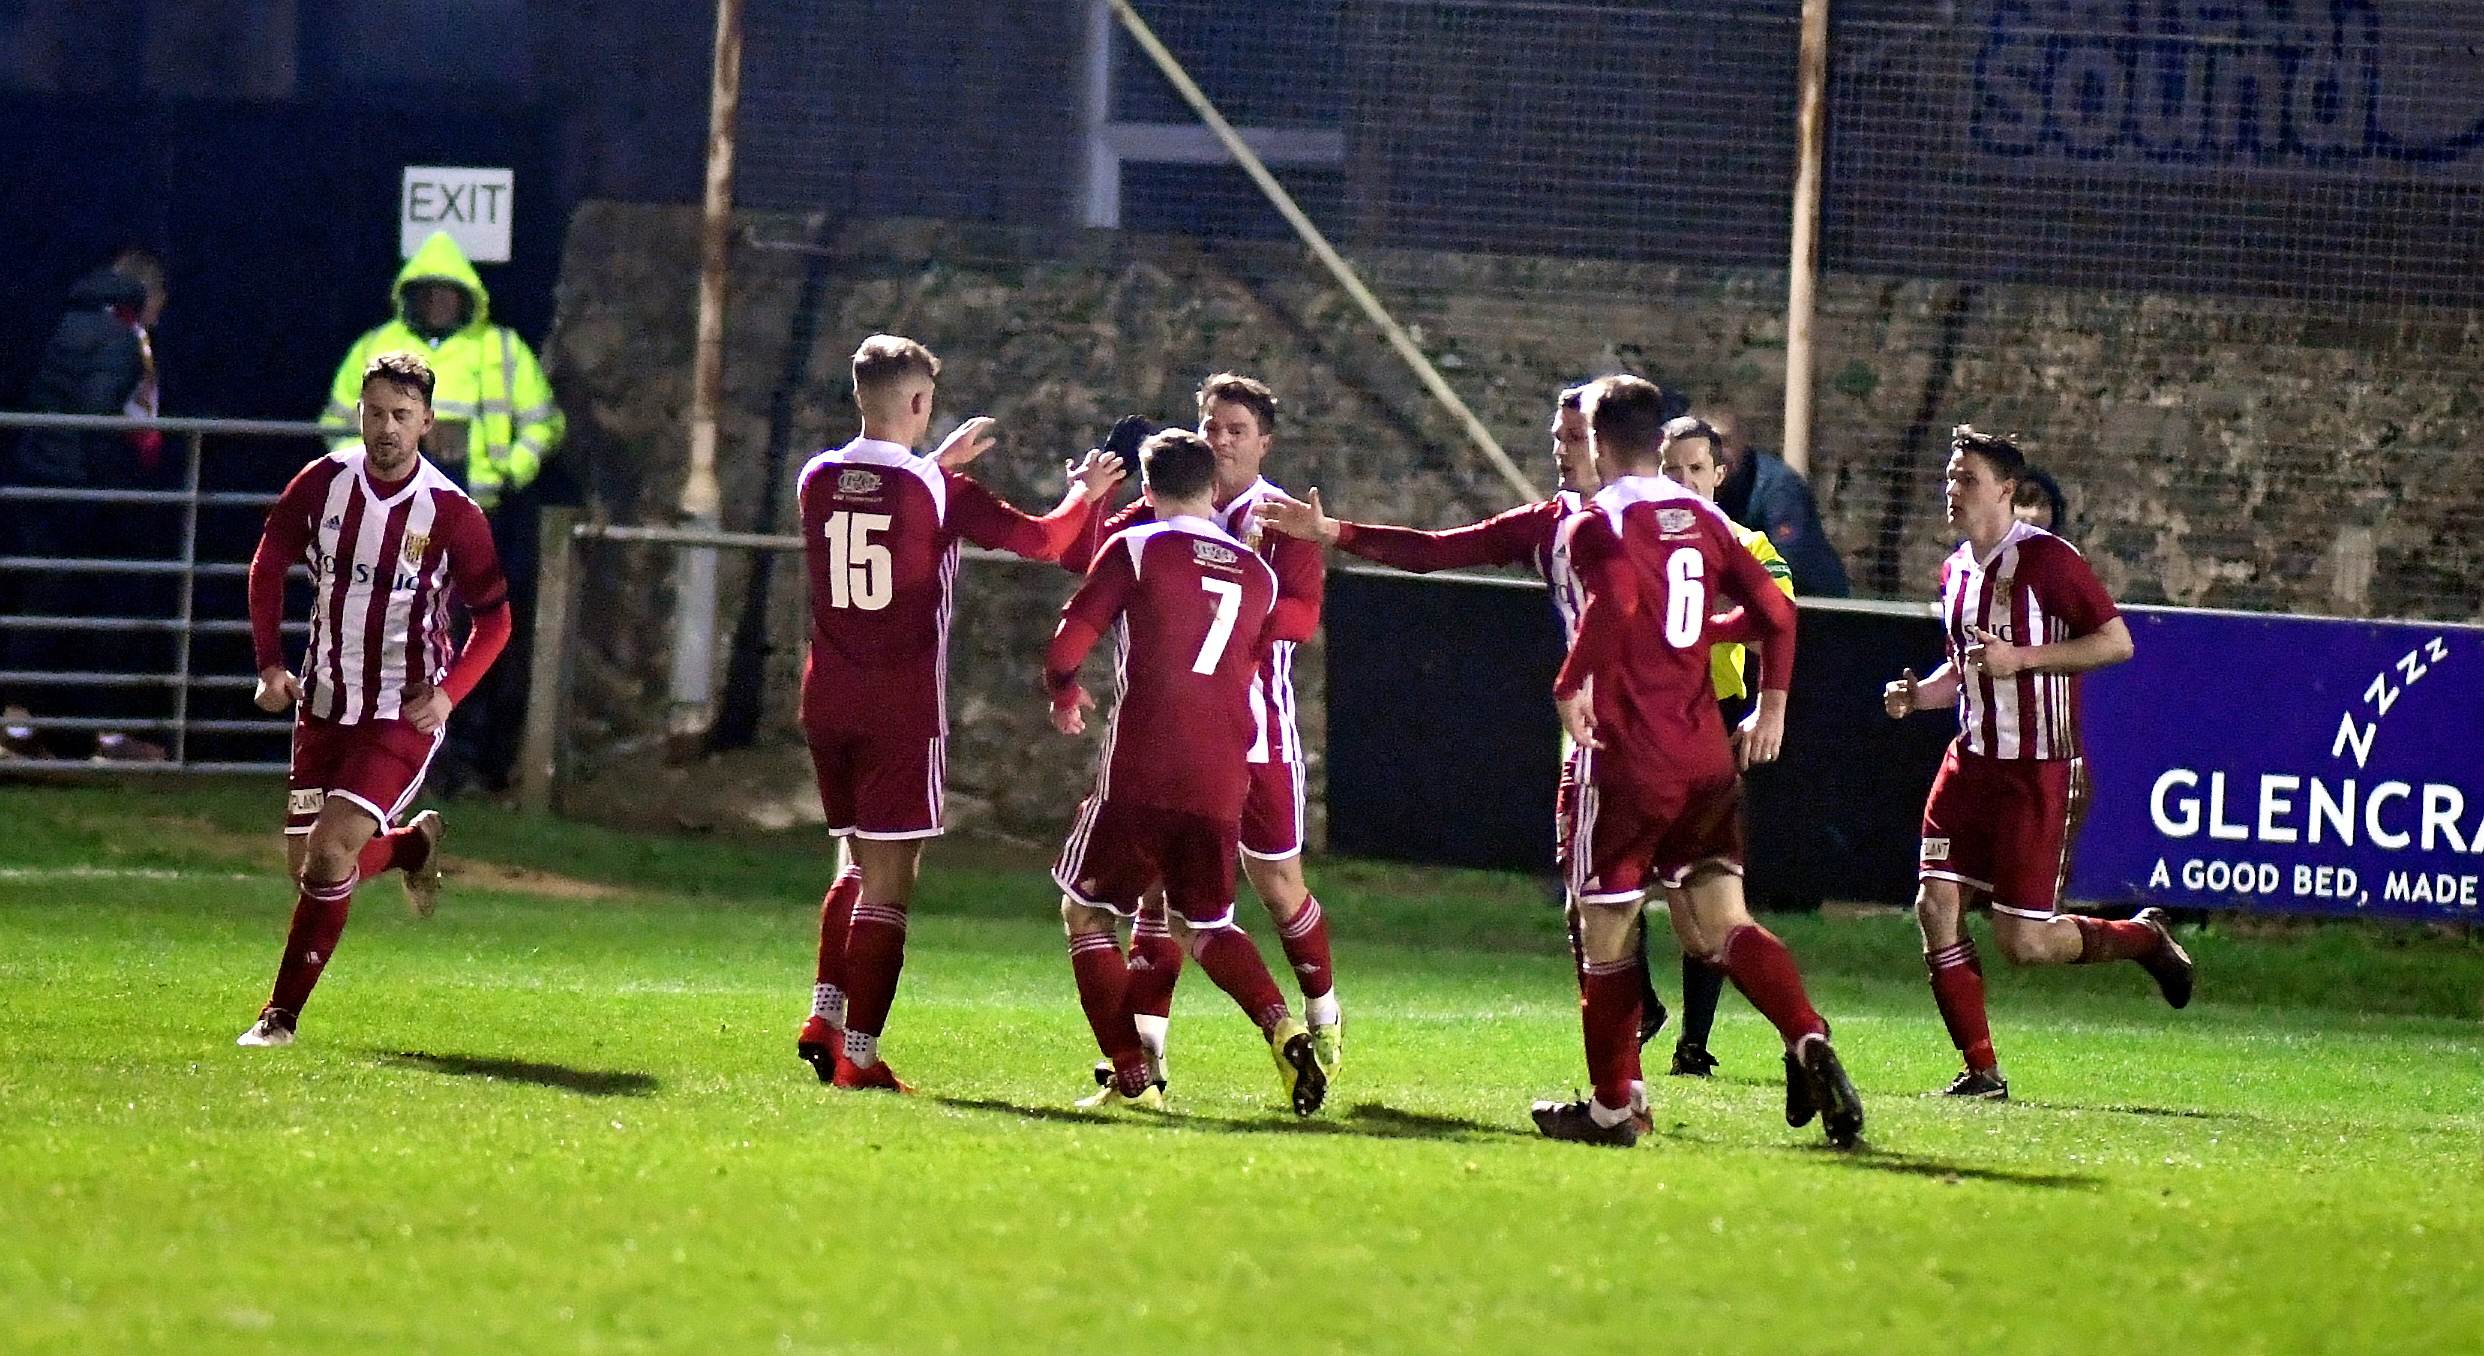 Formartine celebrate an equaliser against Fraserburgh, with Conor Gethins the scorer